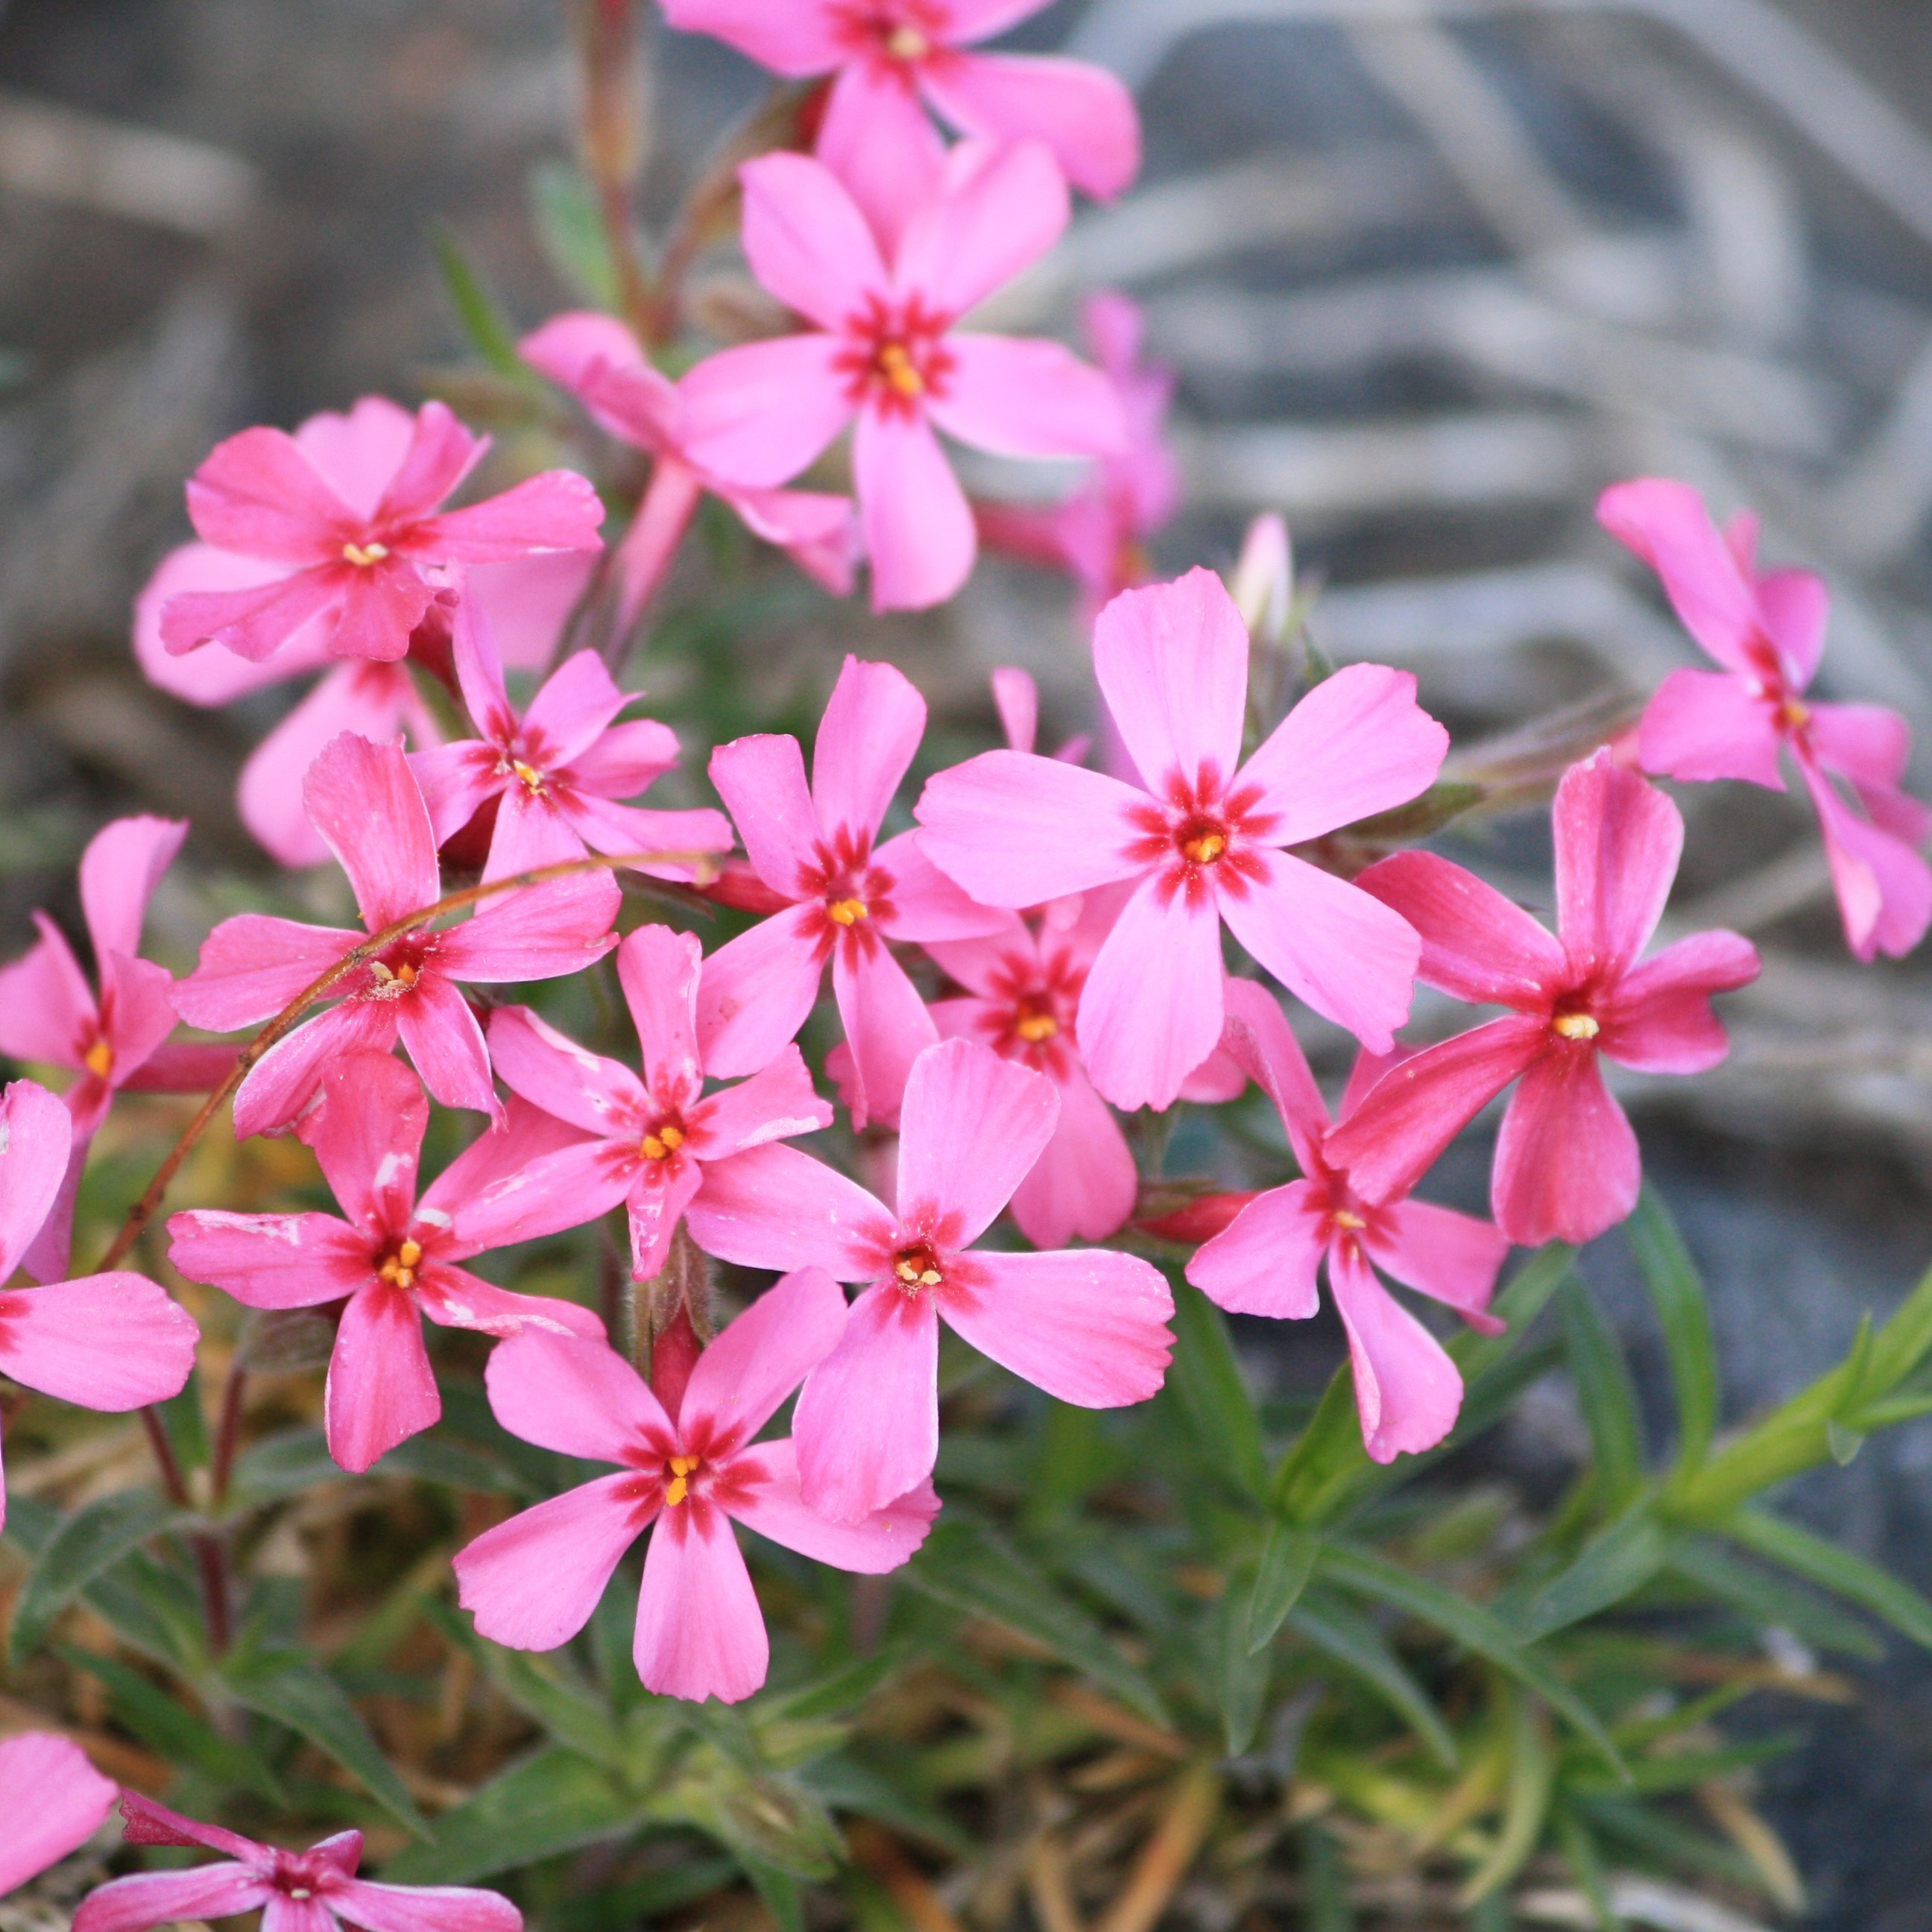 Creeping Phlox Pink Flowers Picture.